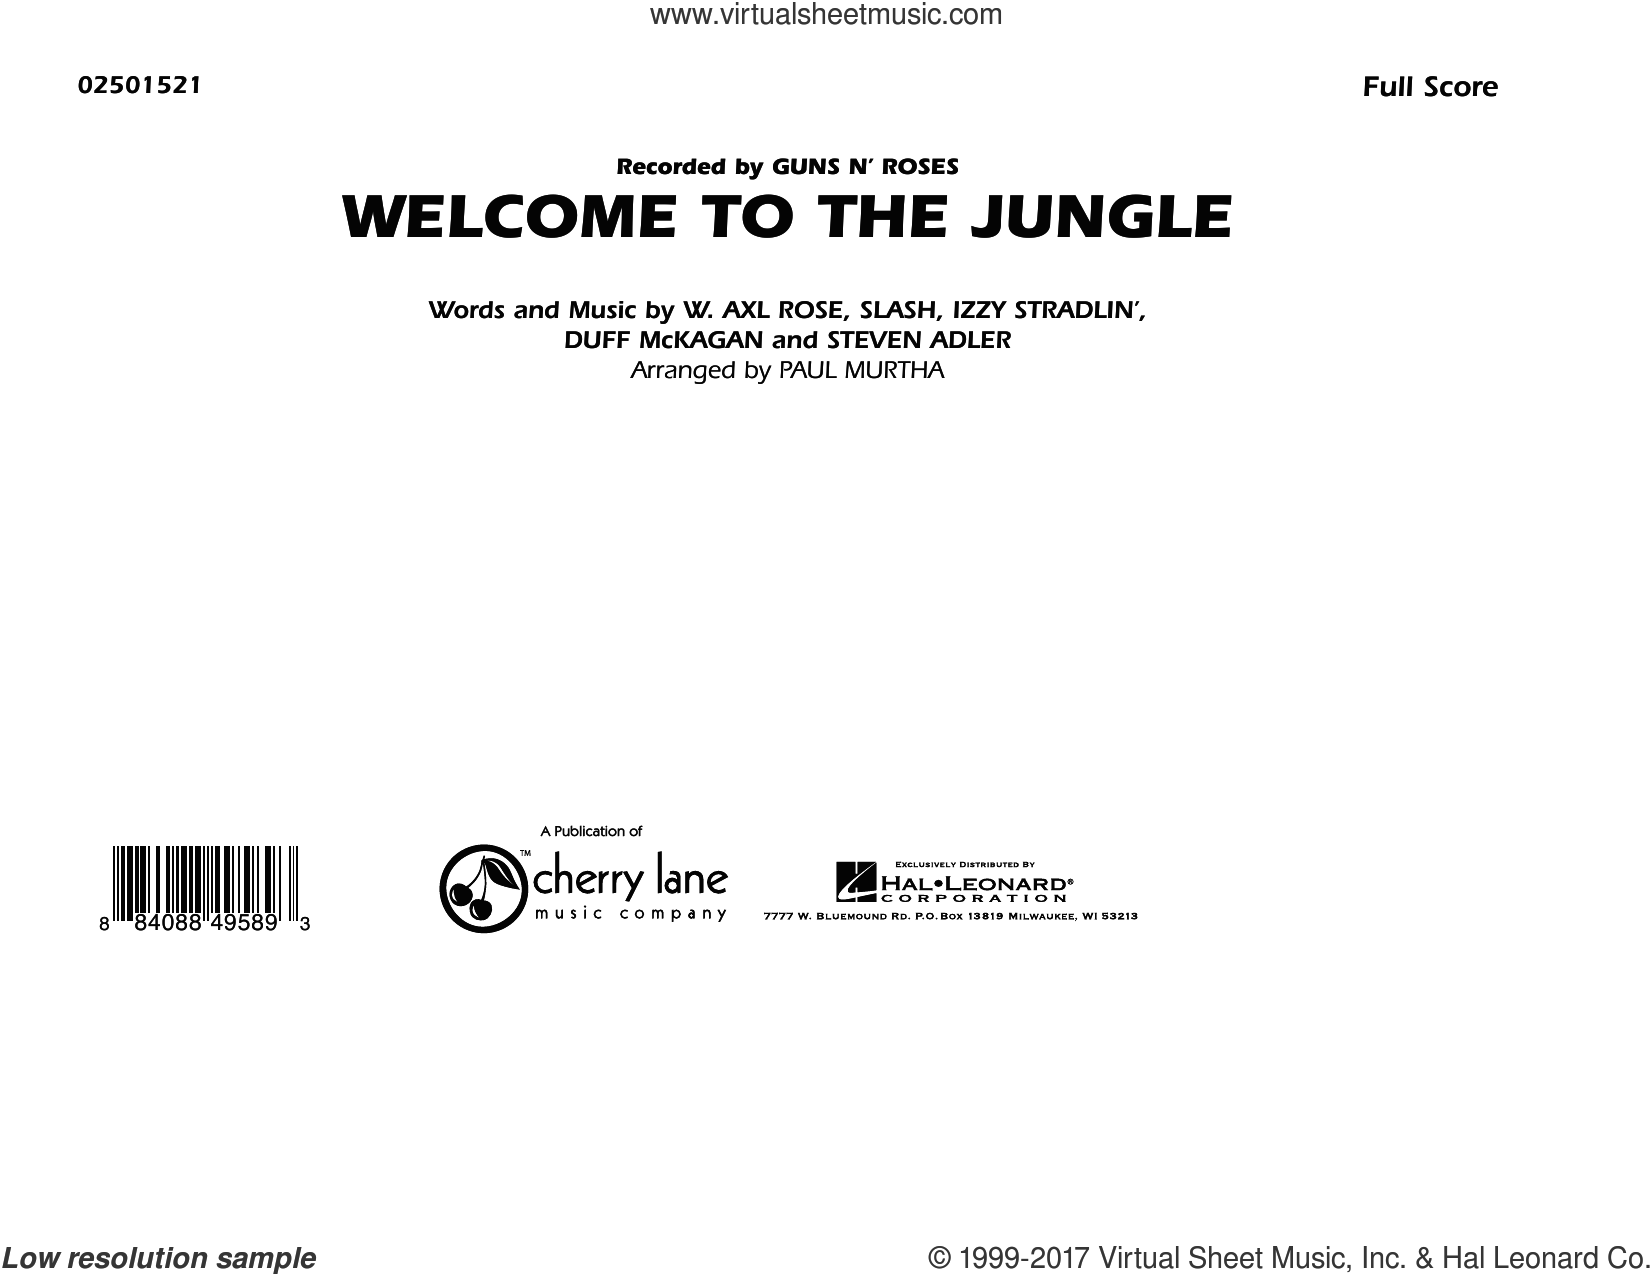 Welcome To The Jungle (COMPLETE) sheet music for marching band by Duff McKagan